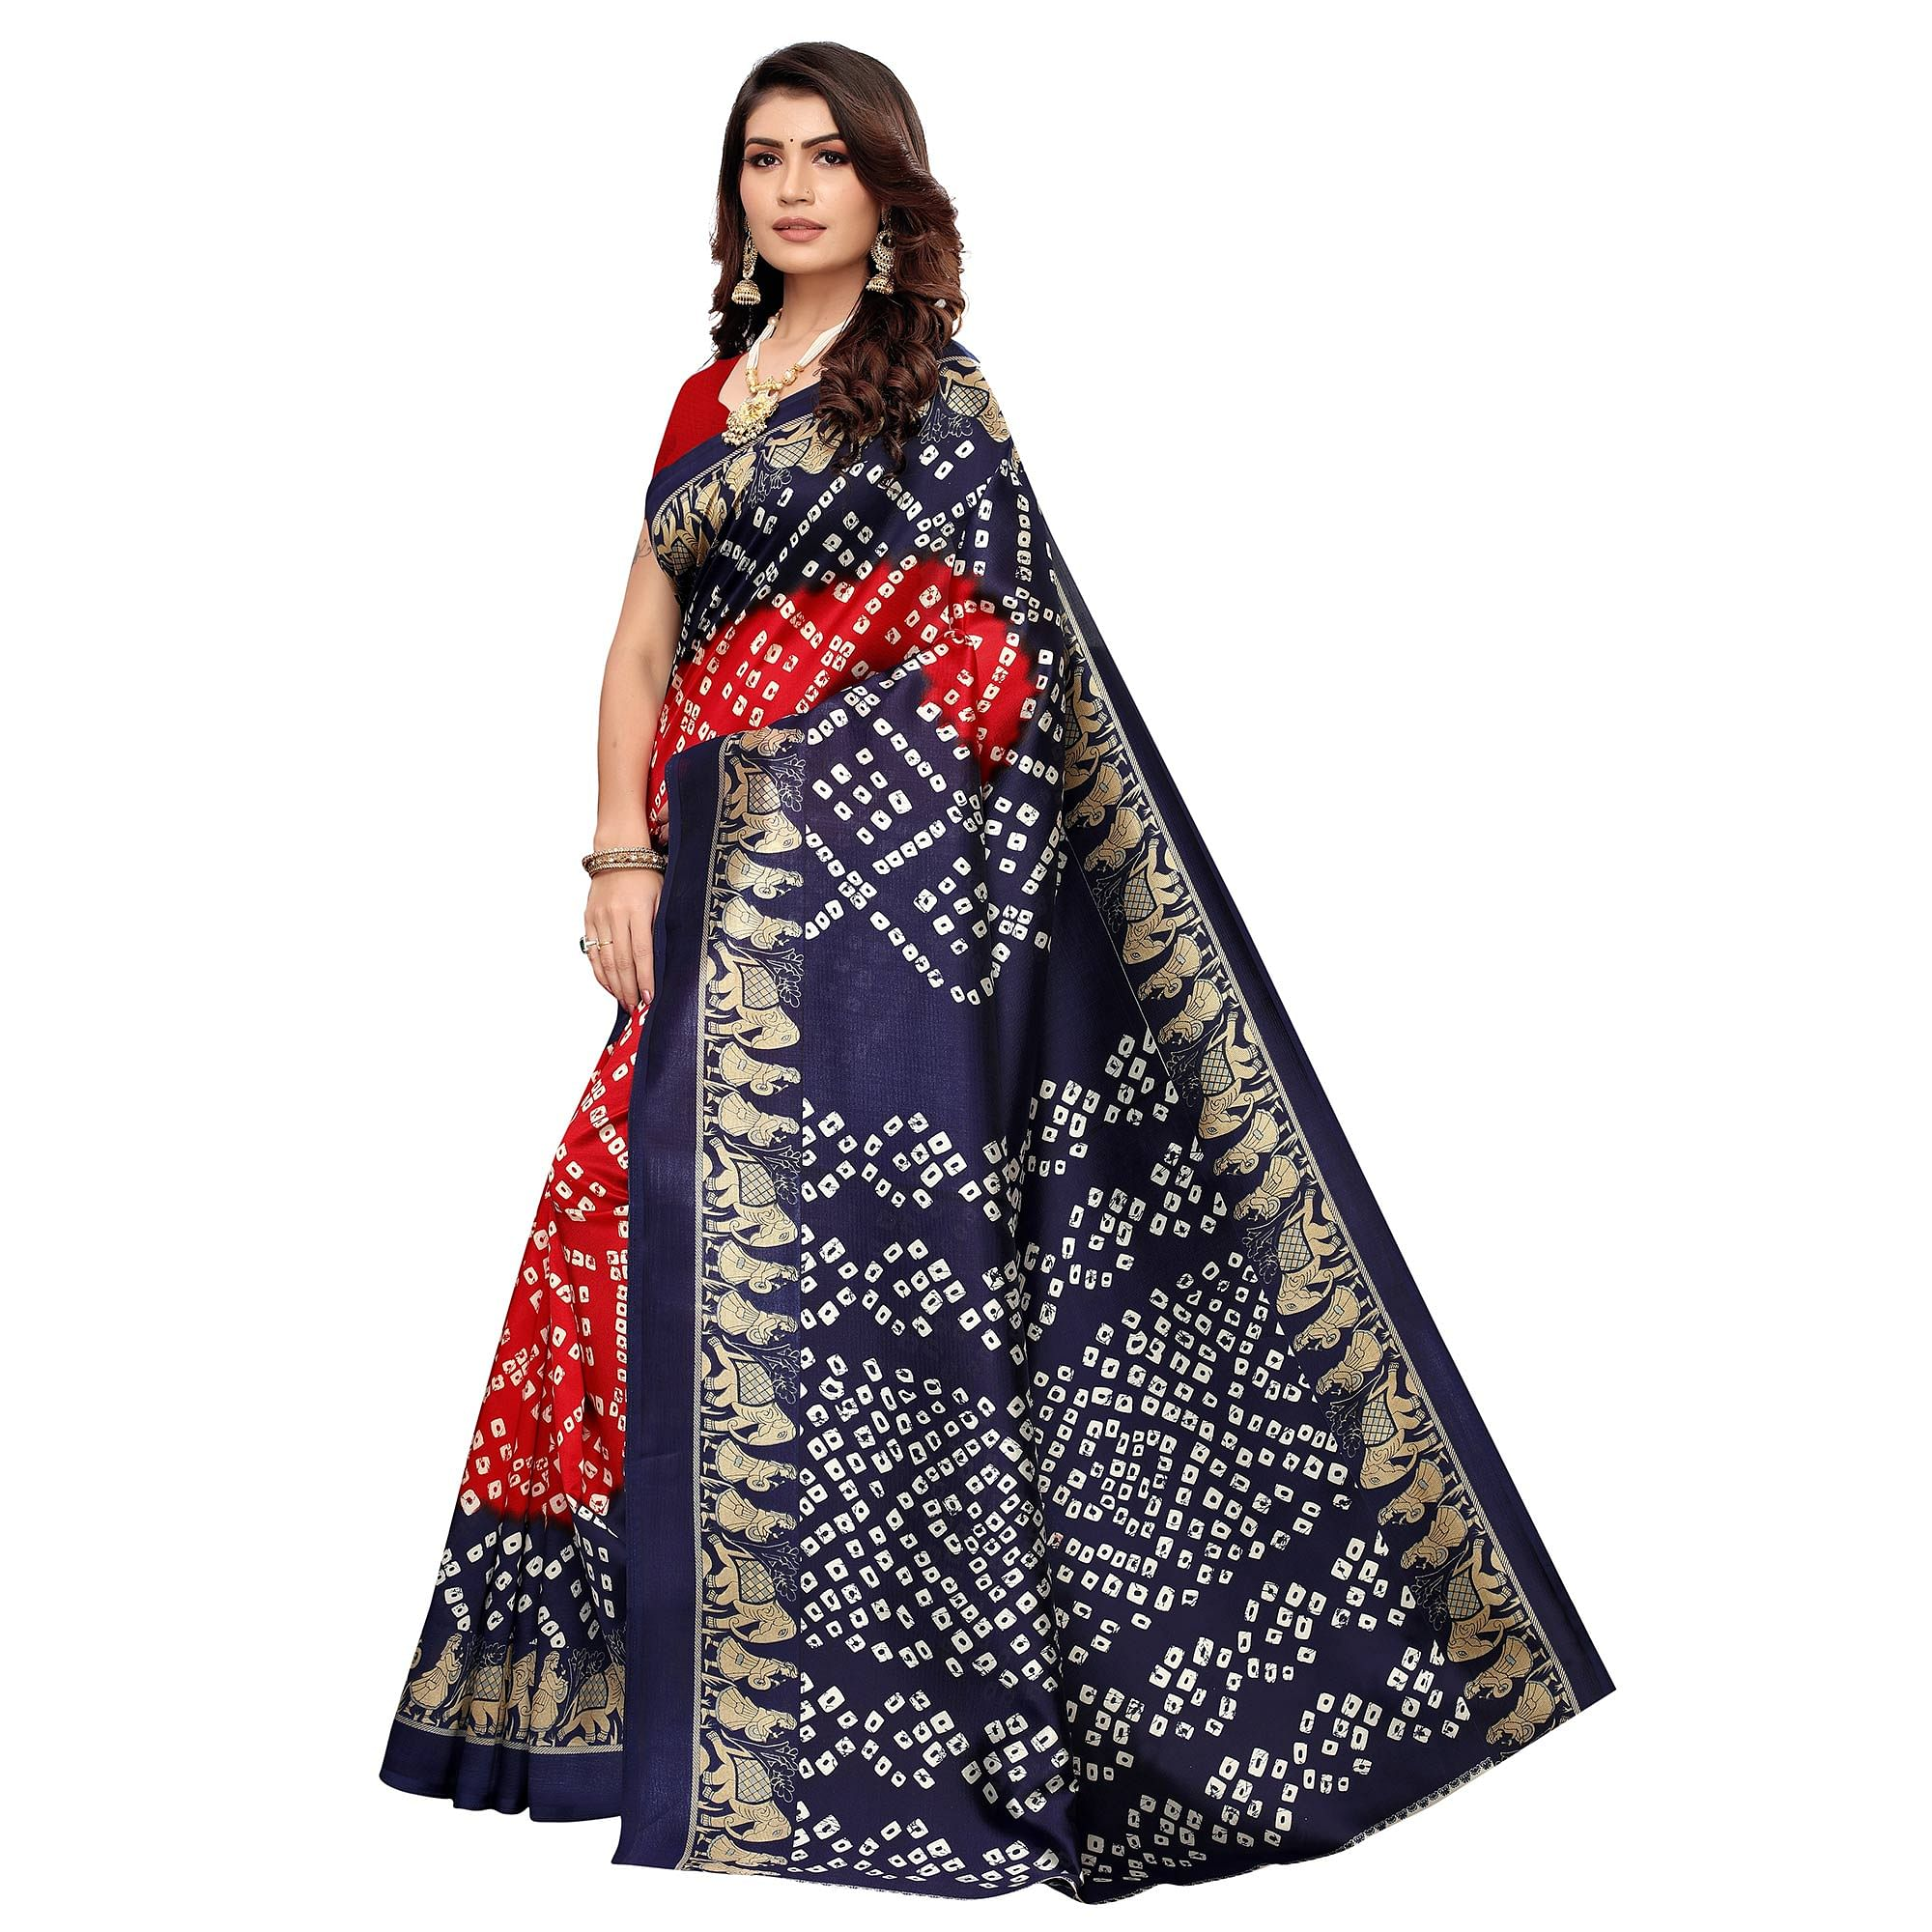 Energetic Red - Navy Blue Colored Casual Wear Printed Art Silk Saree